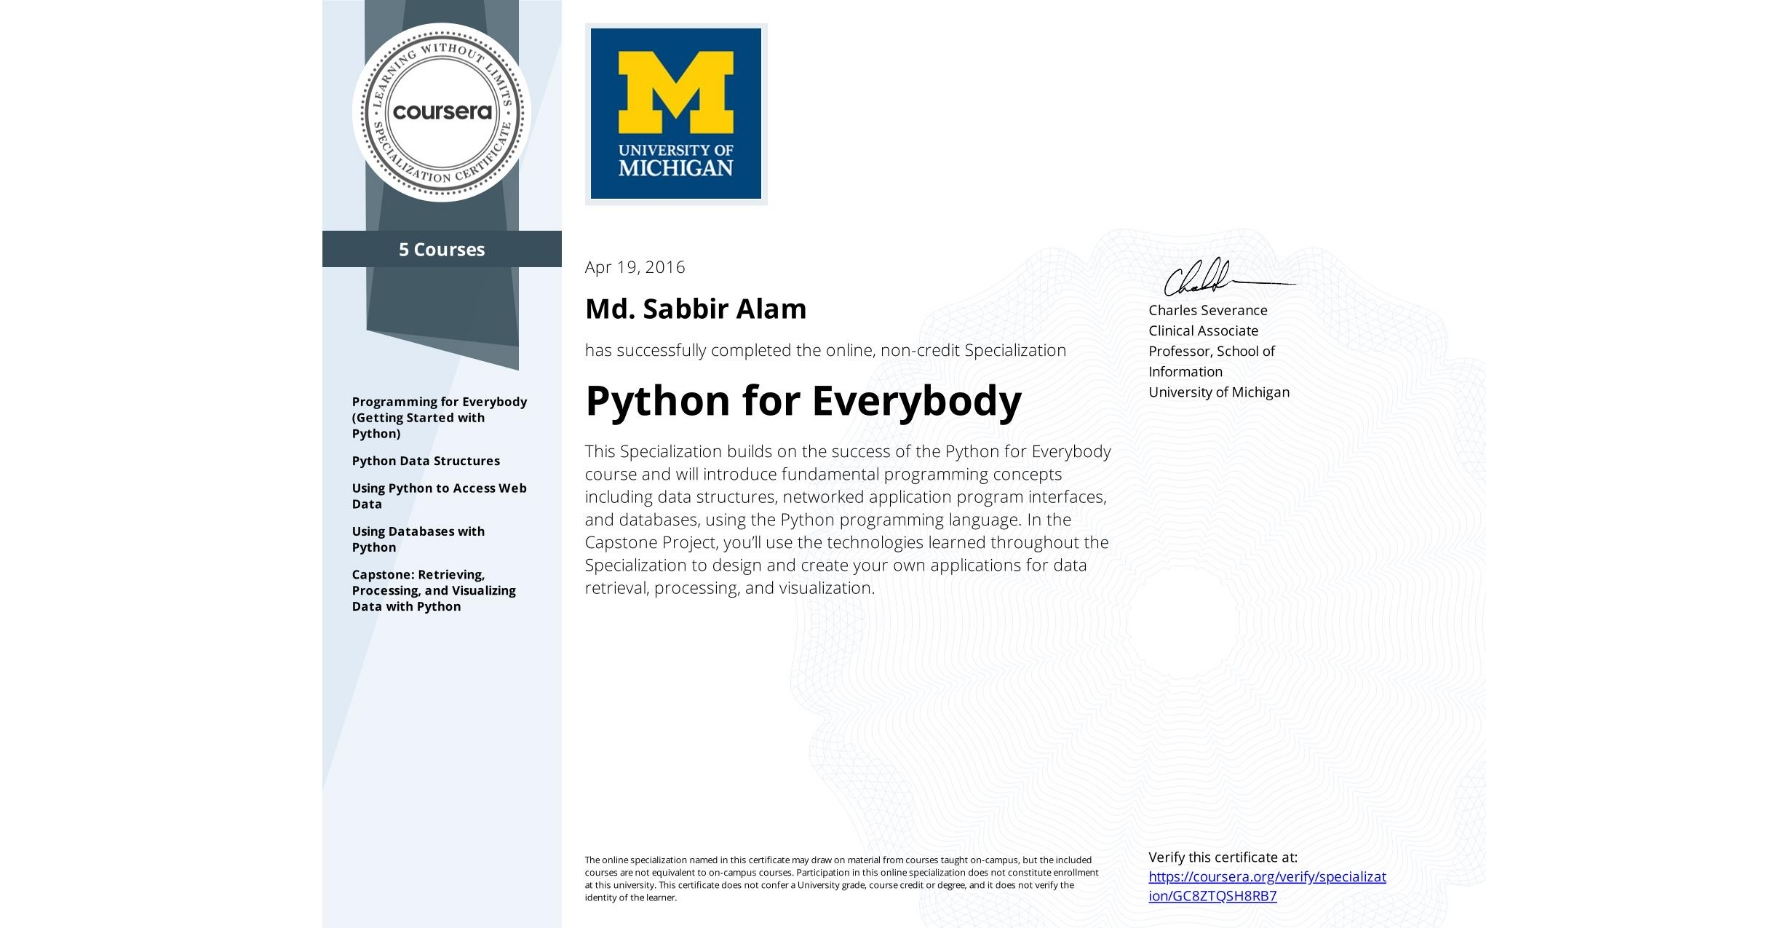 View certificate for Md. Sabbir Alam, Python for Everybody, offered through Coursera. This Specialization builds on the success of the Python for Everybody course and will introduce fundamental programming concepts including data structures, networked application program interfaces, and databases, using the Python programming language. In the Capstone Project, you'll use the technologies learned throughout the Specialization to design and create your own applications for data retrieval, processing, and visualization.